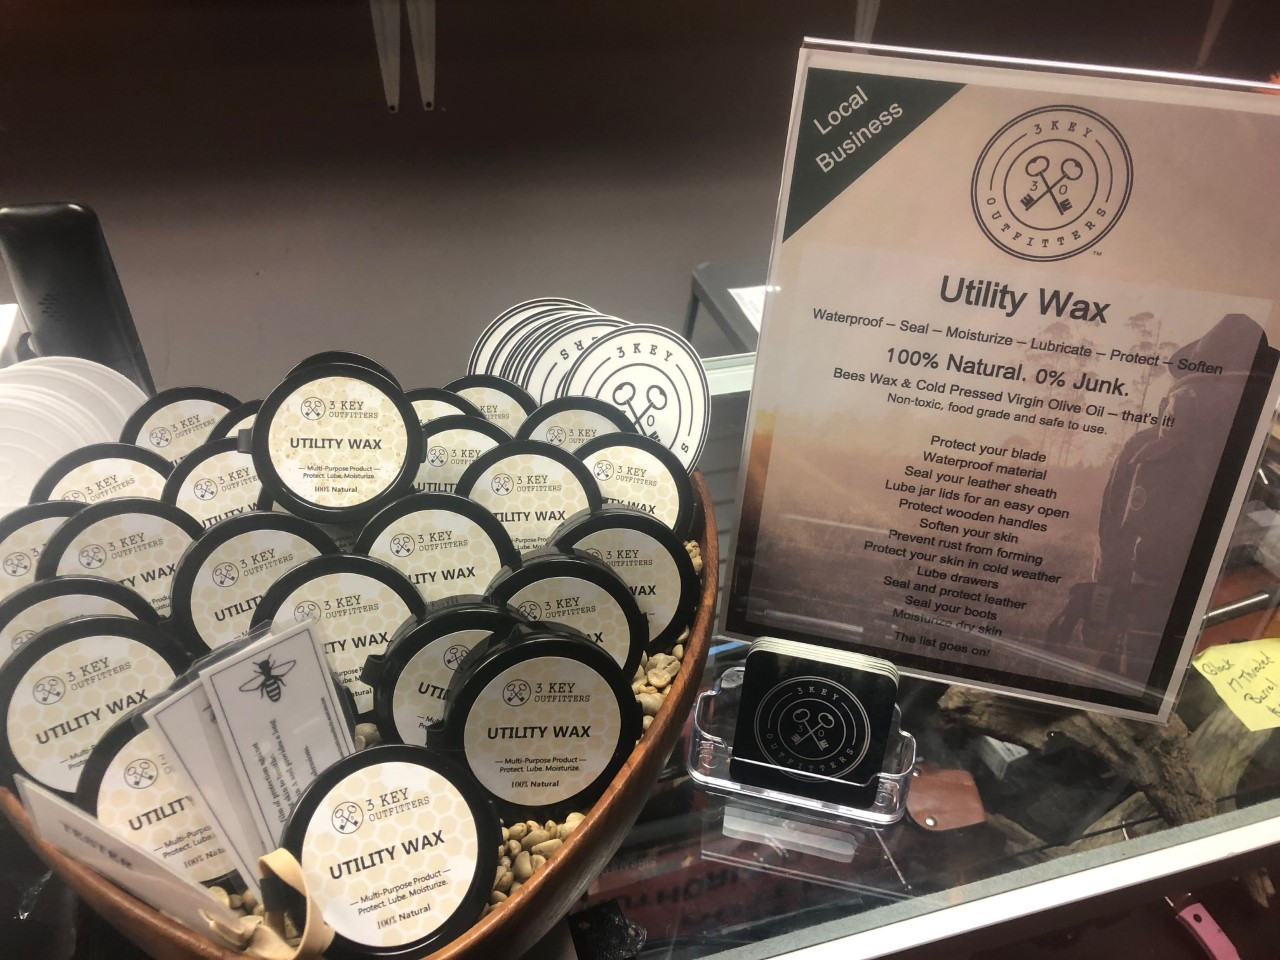 3 Key Outfitters Utility Wax